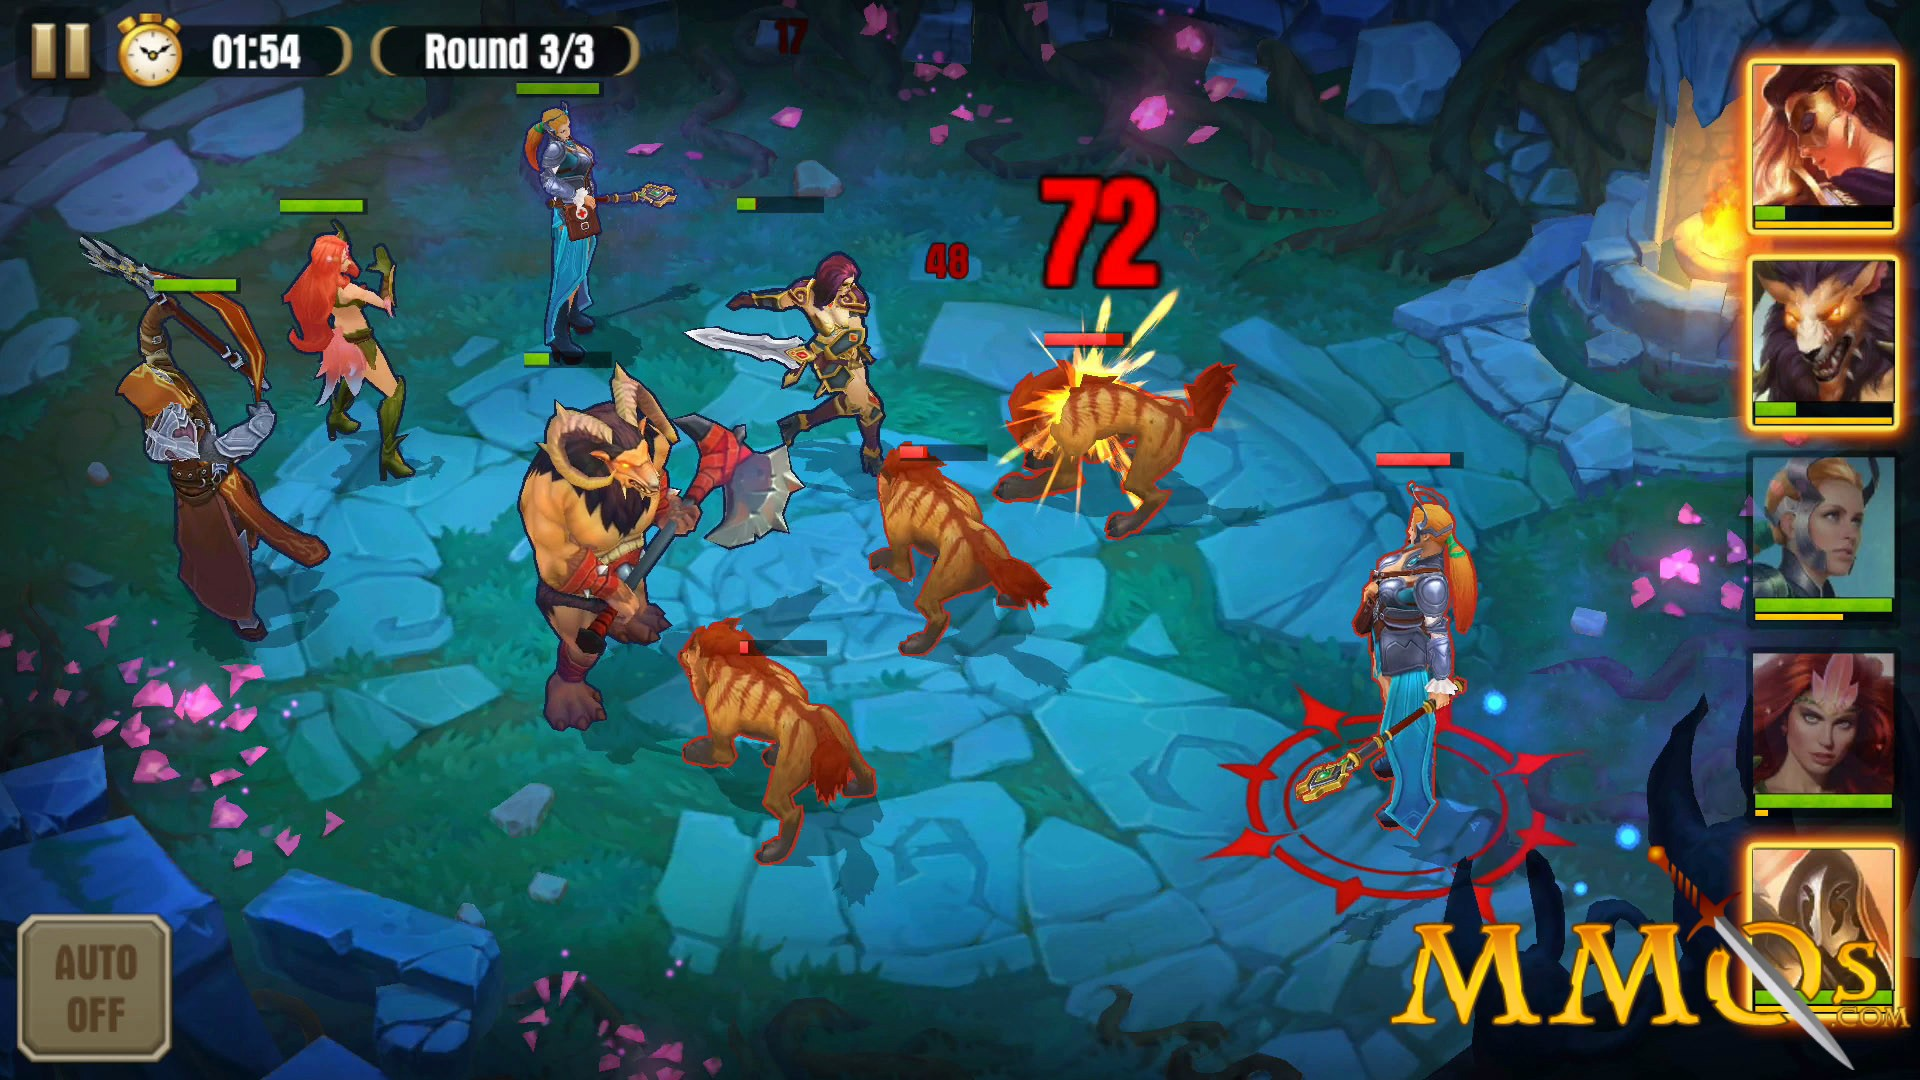 Juggernaut Wars Update Brings New Heroes and Enemies